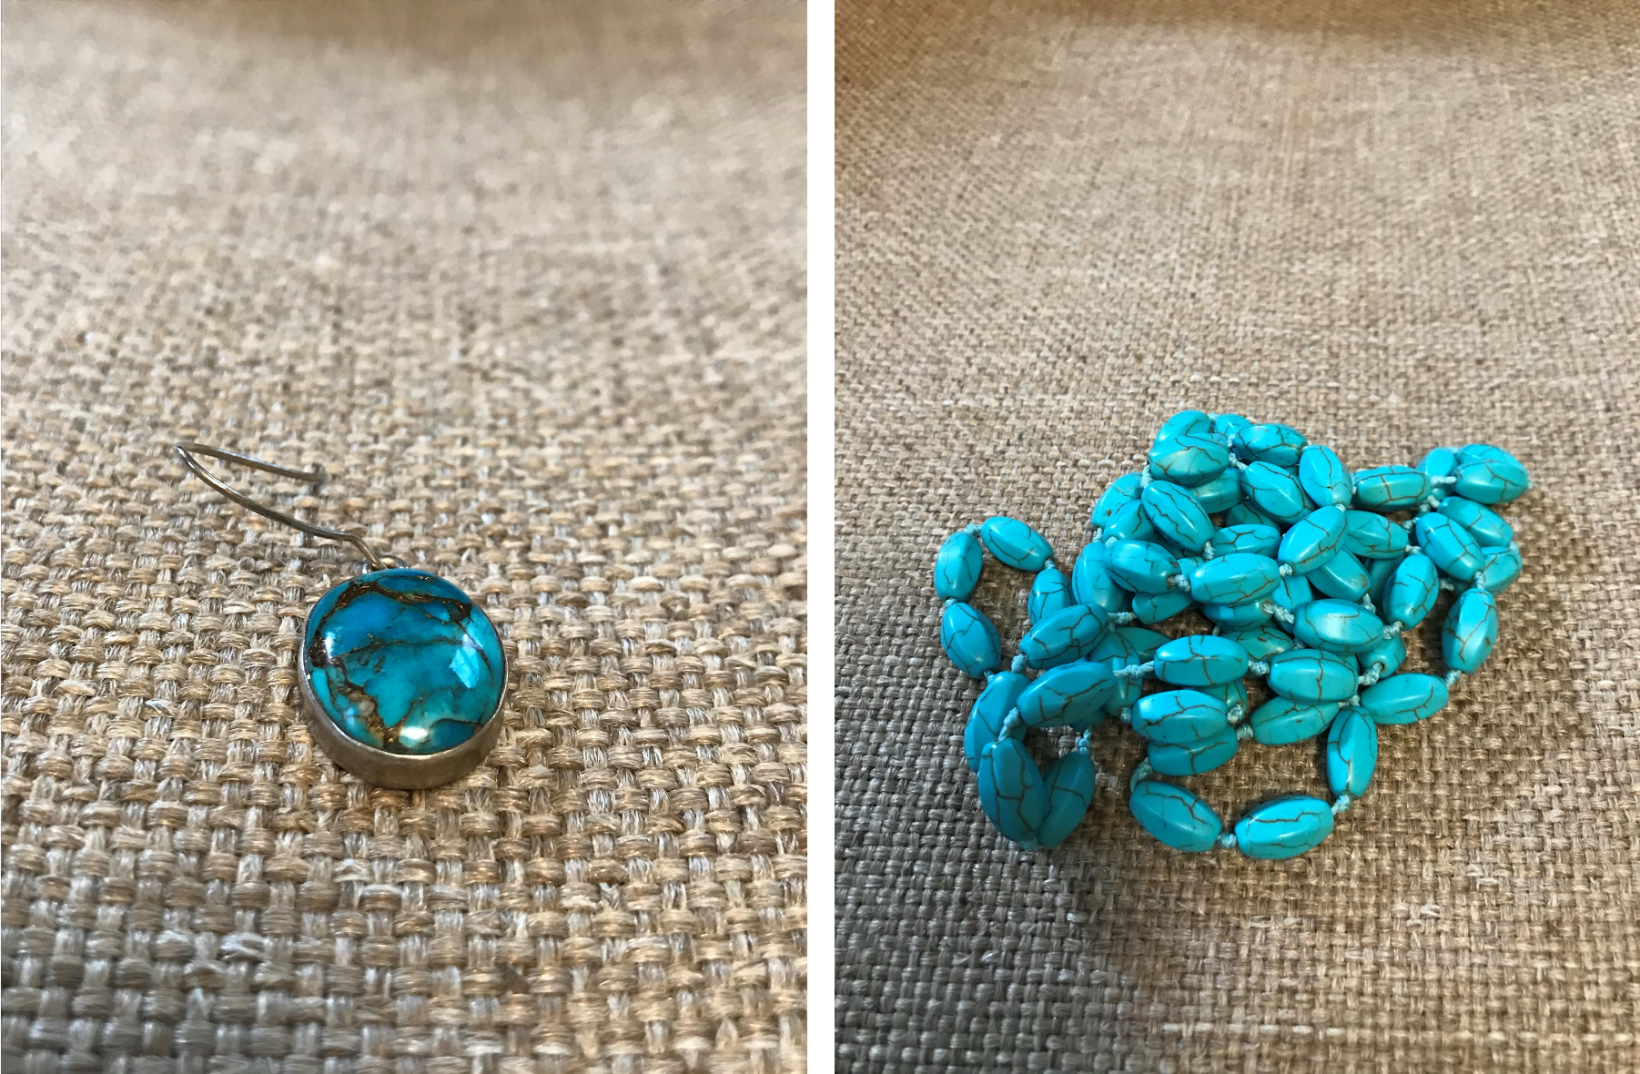 Identifying real turquoise with XRF testing